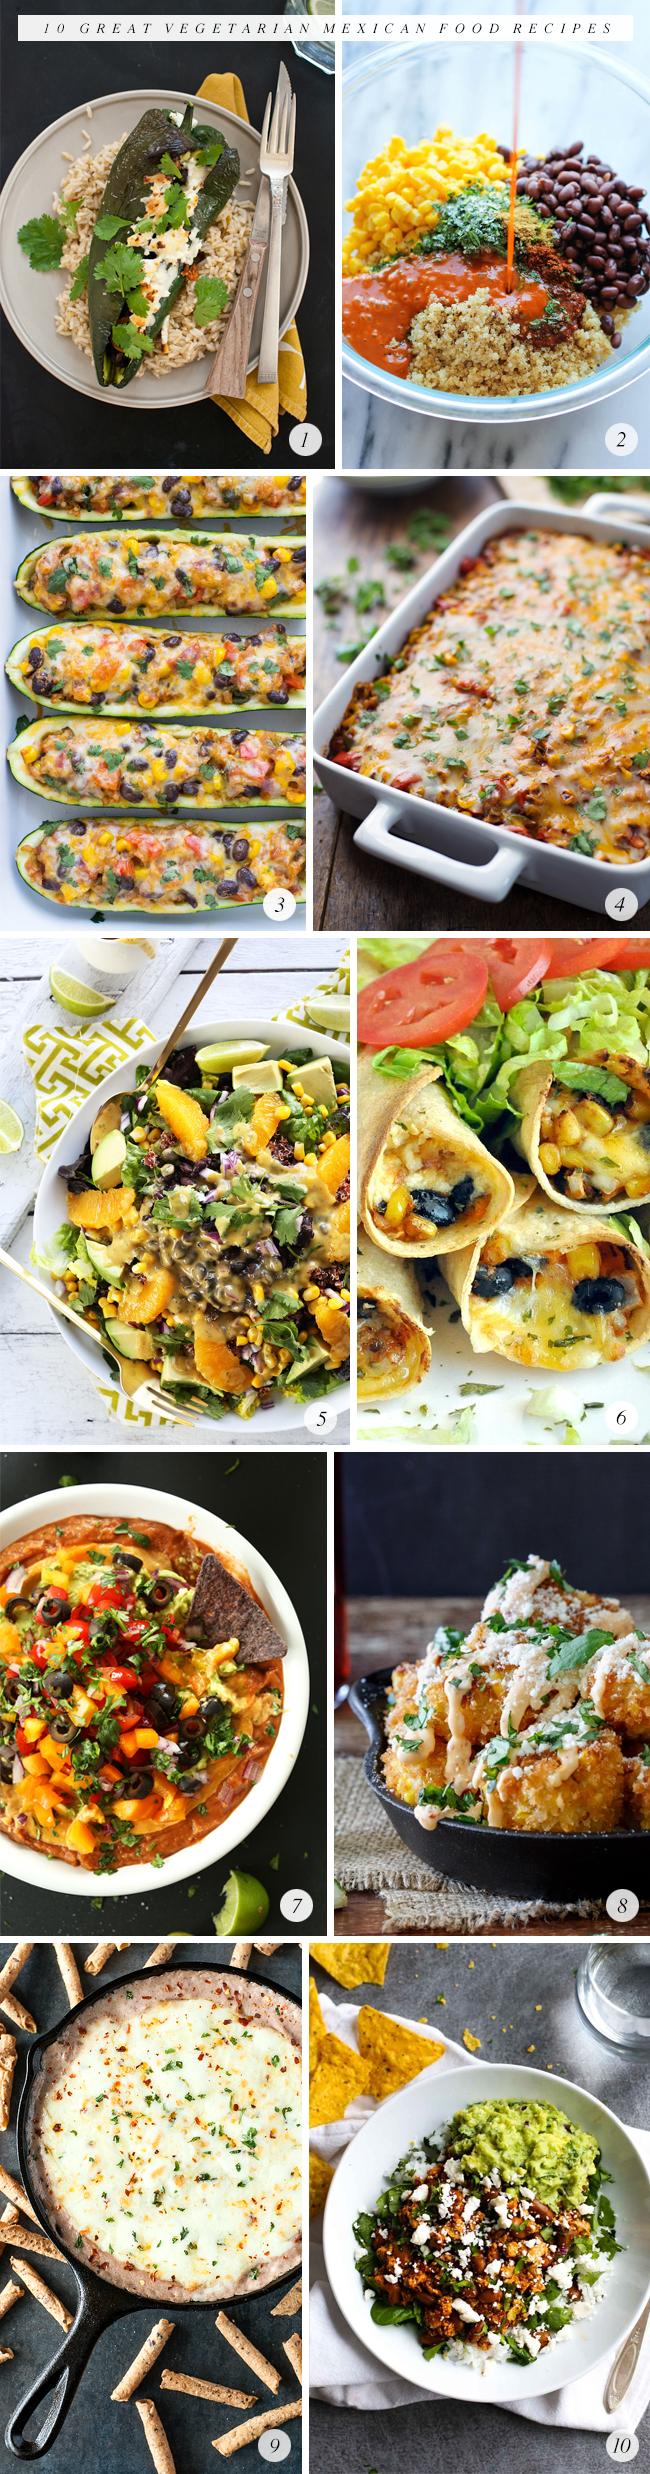 10 Great Vegetarian Mexican Food Recipes (Bubby and Bean)